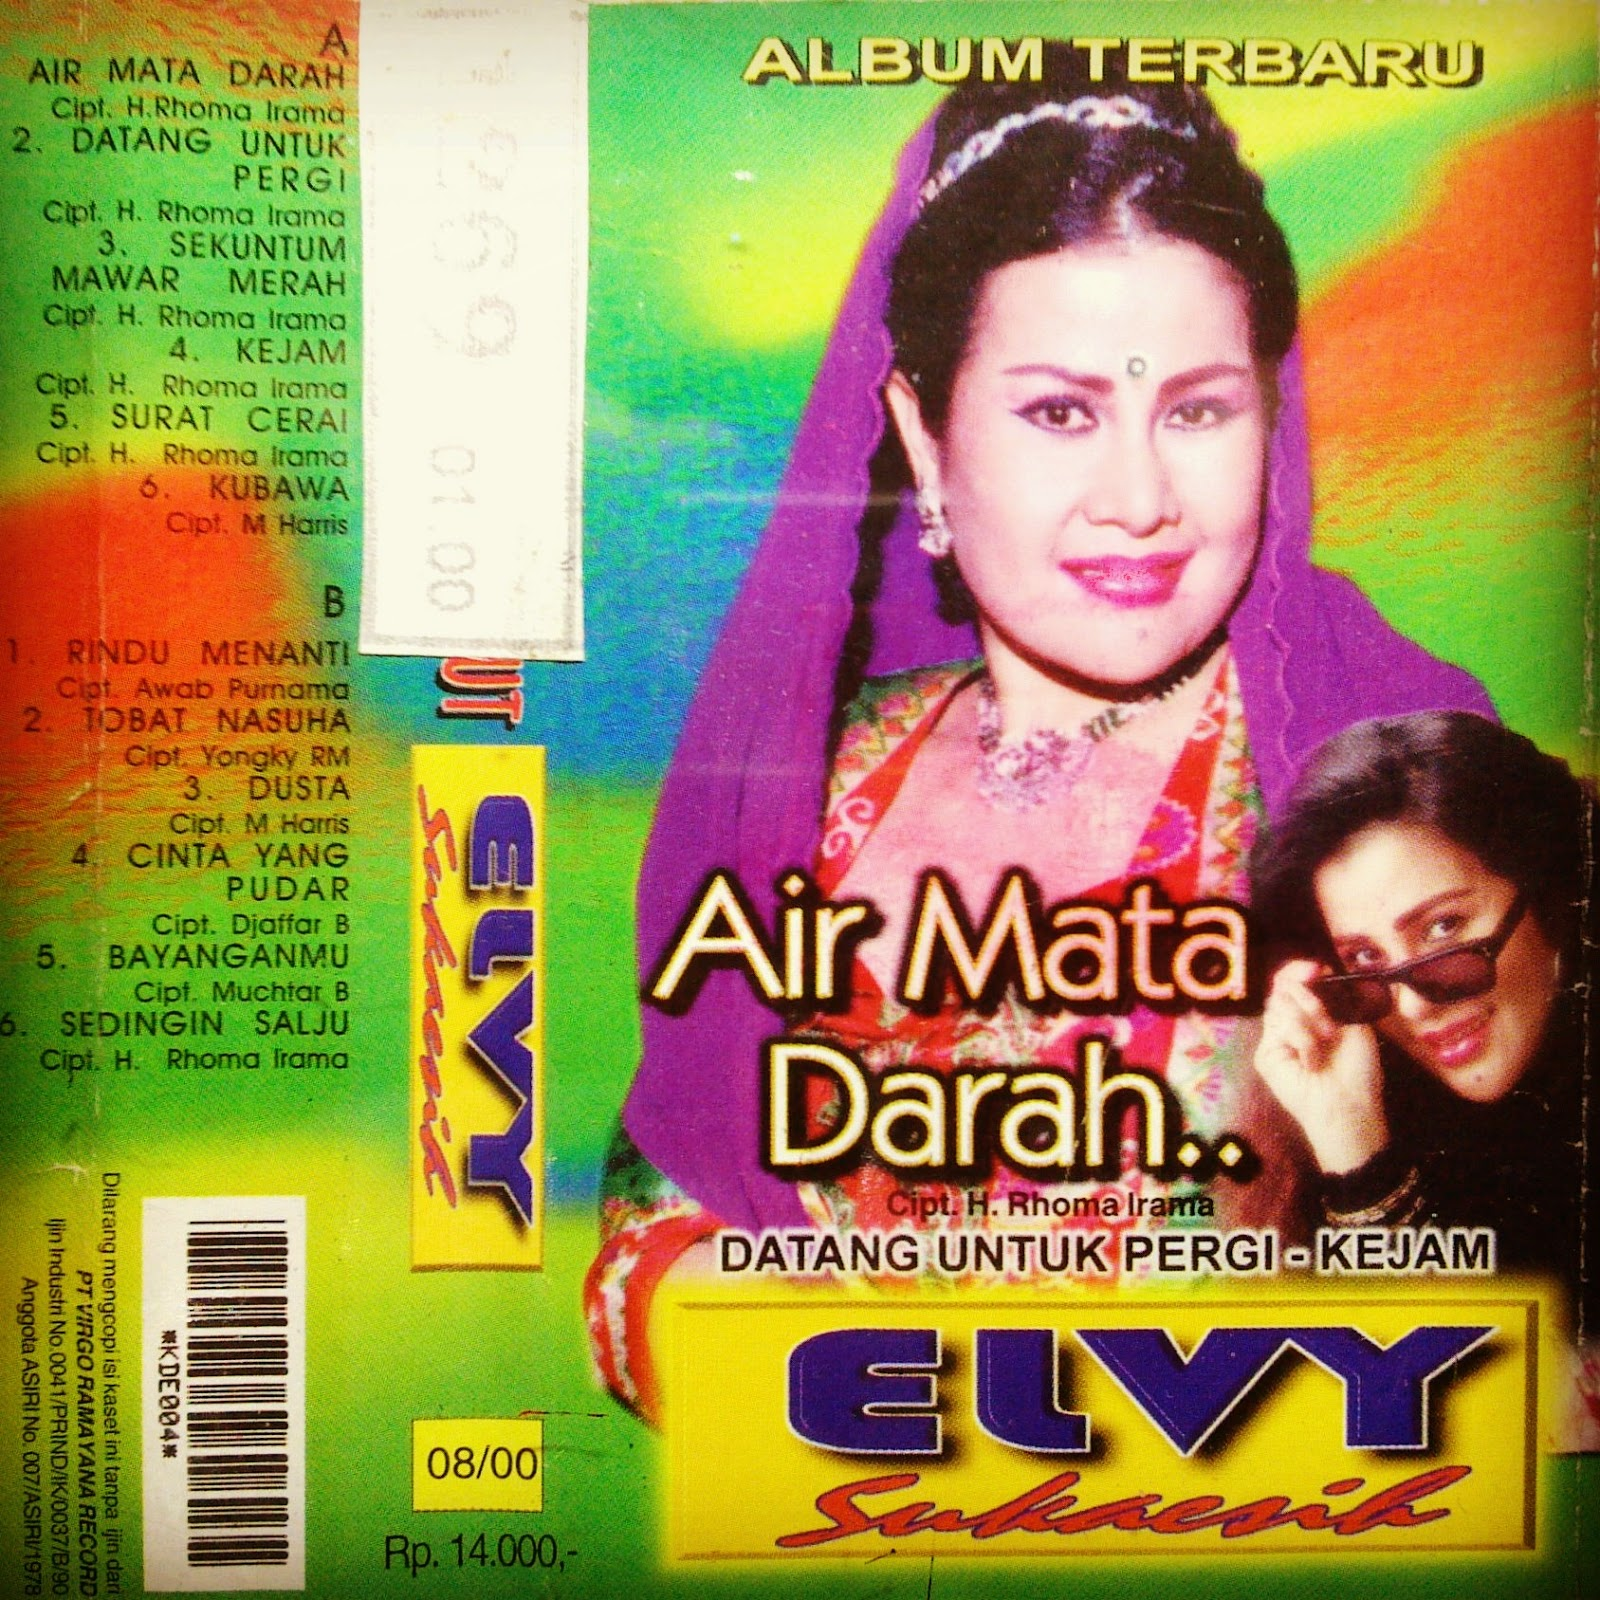 Download Lagu Dangdut Elvy Sukaesih - Air Mata Darah 2000